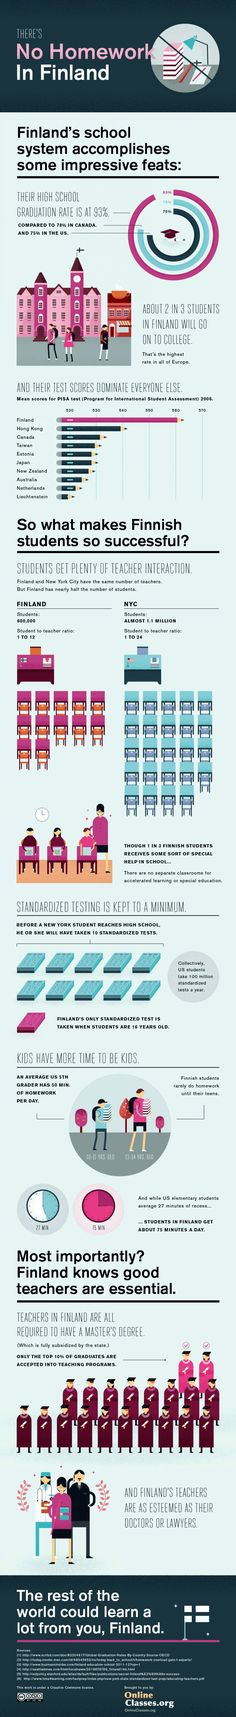 There's no Homework in Finland Infographic